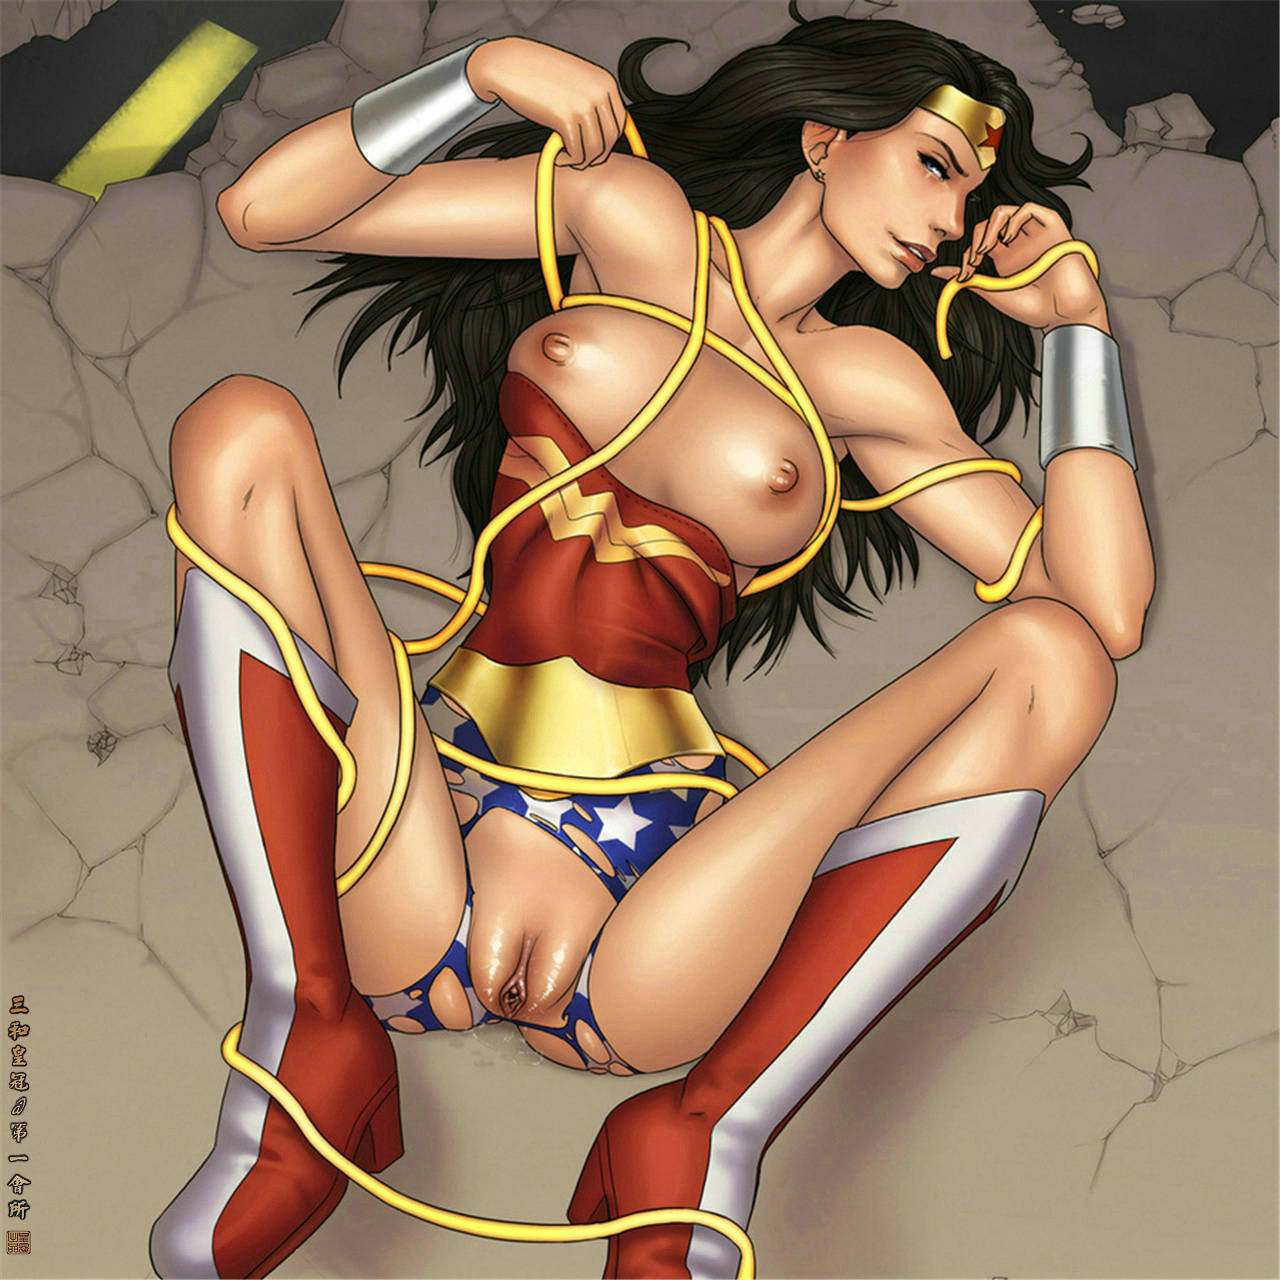 Hentai wonder woman picture nackt pictures